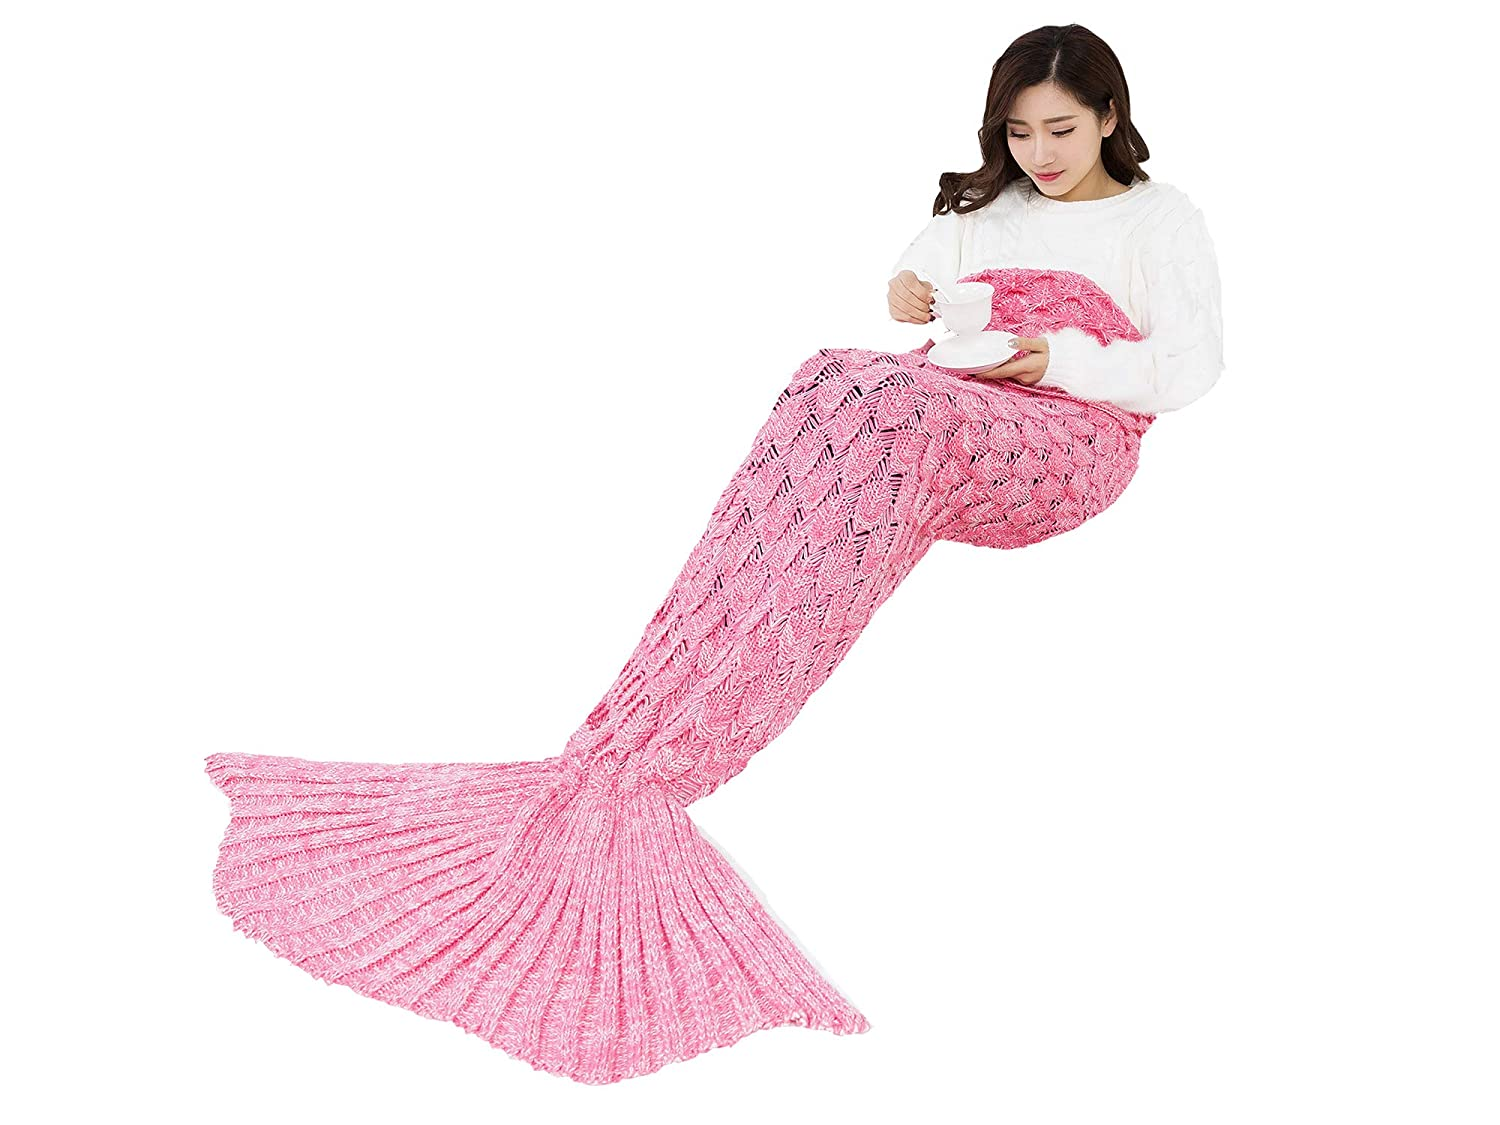 Casirena Mermaid Tail Blanket, Hand Crochet Snuggle Mermaid,Soft All Seasons Sleeping Blankets for Kids,Teenage,Adult Mermaid Tails(71